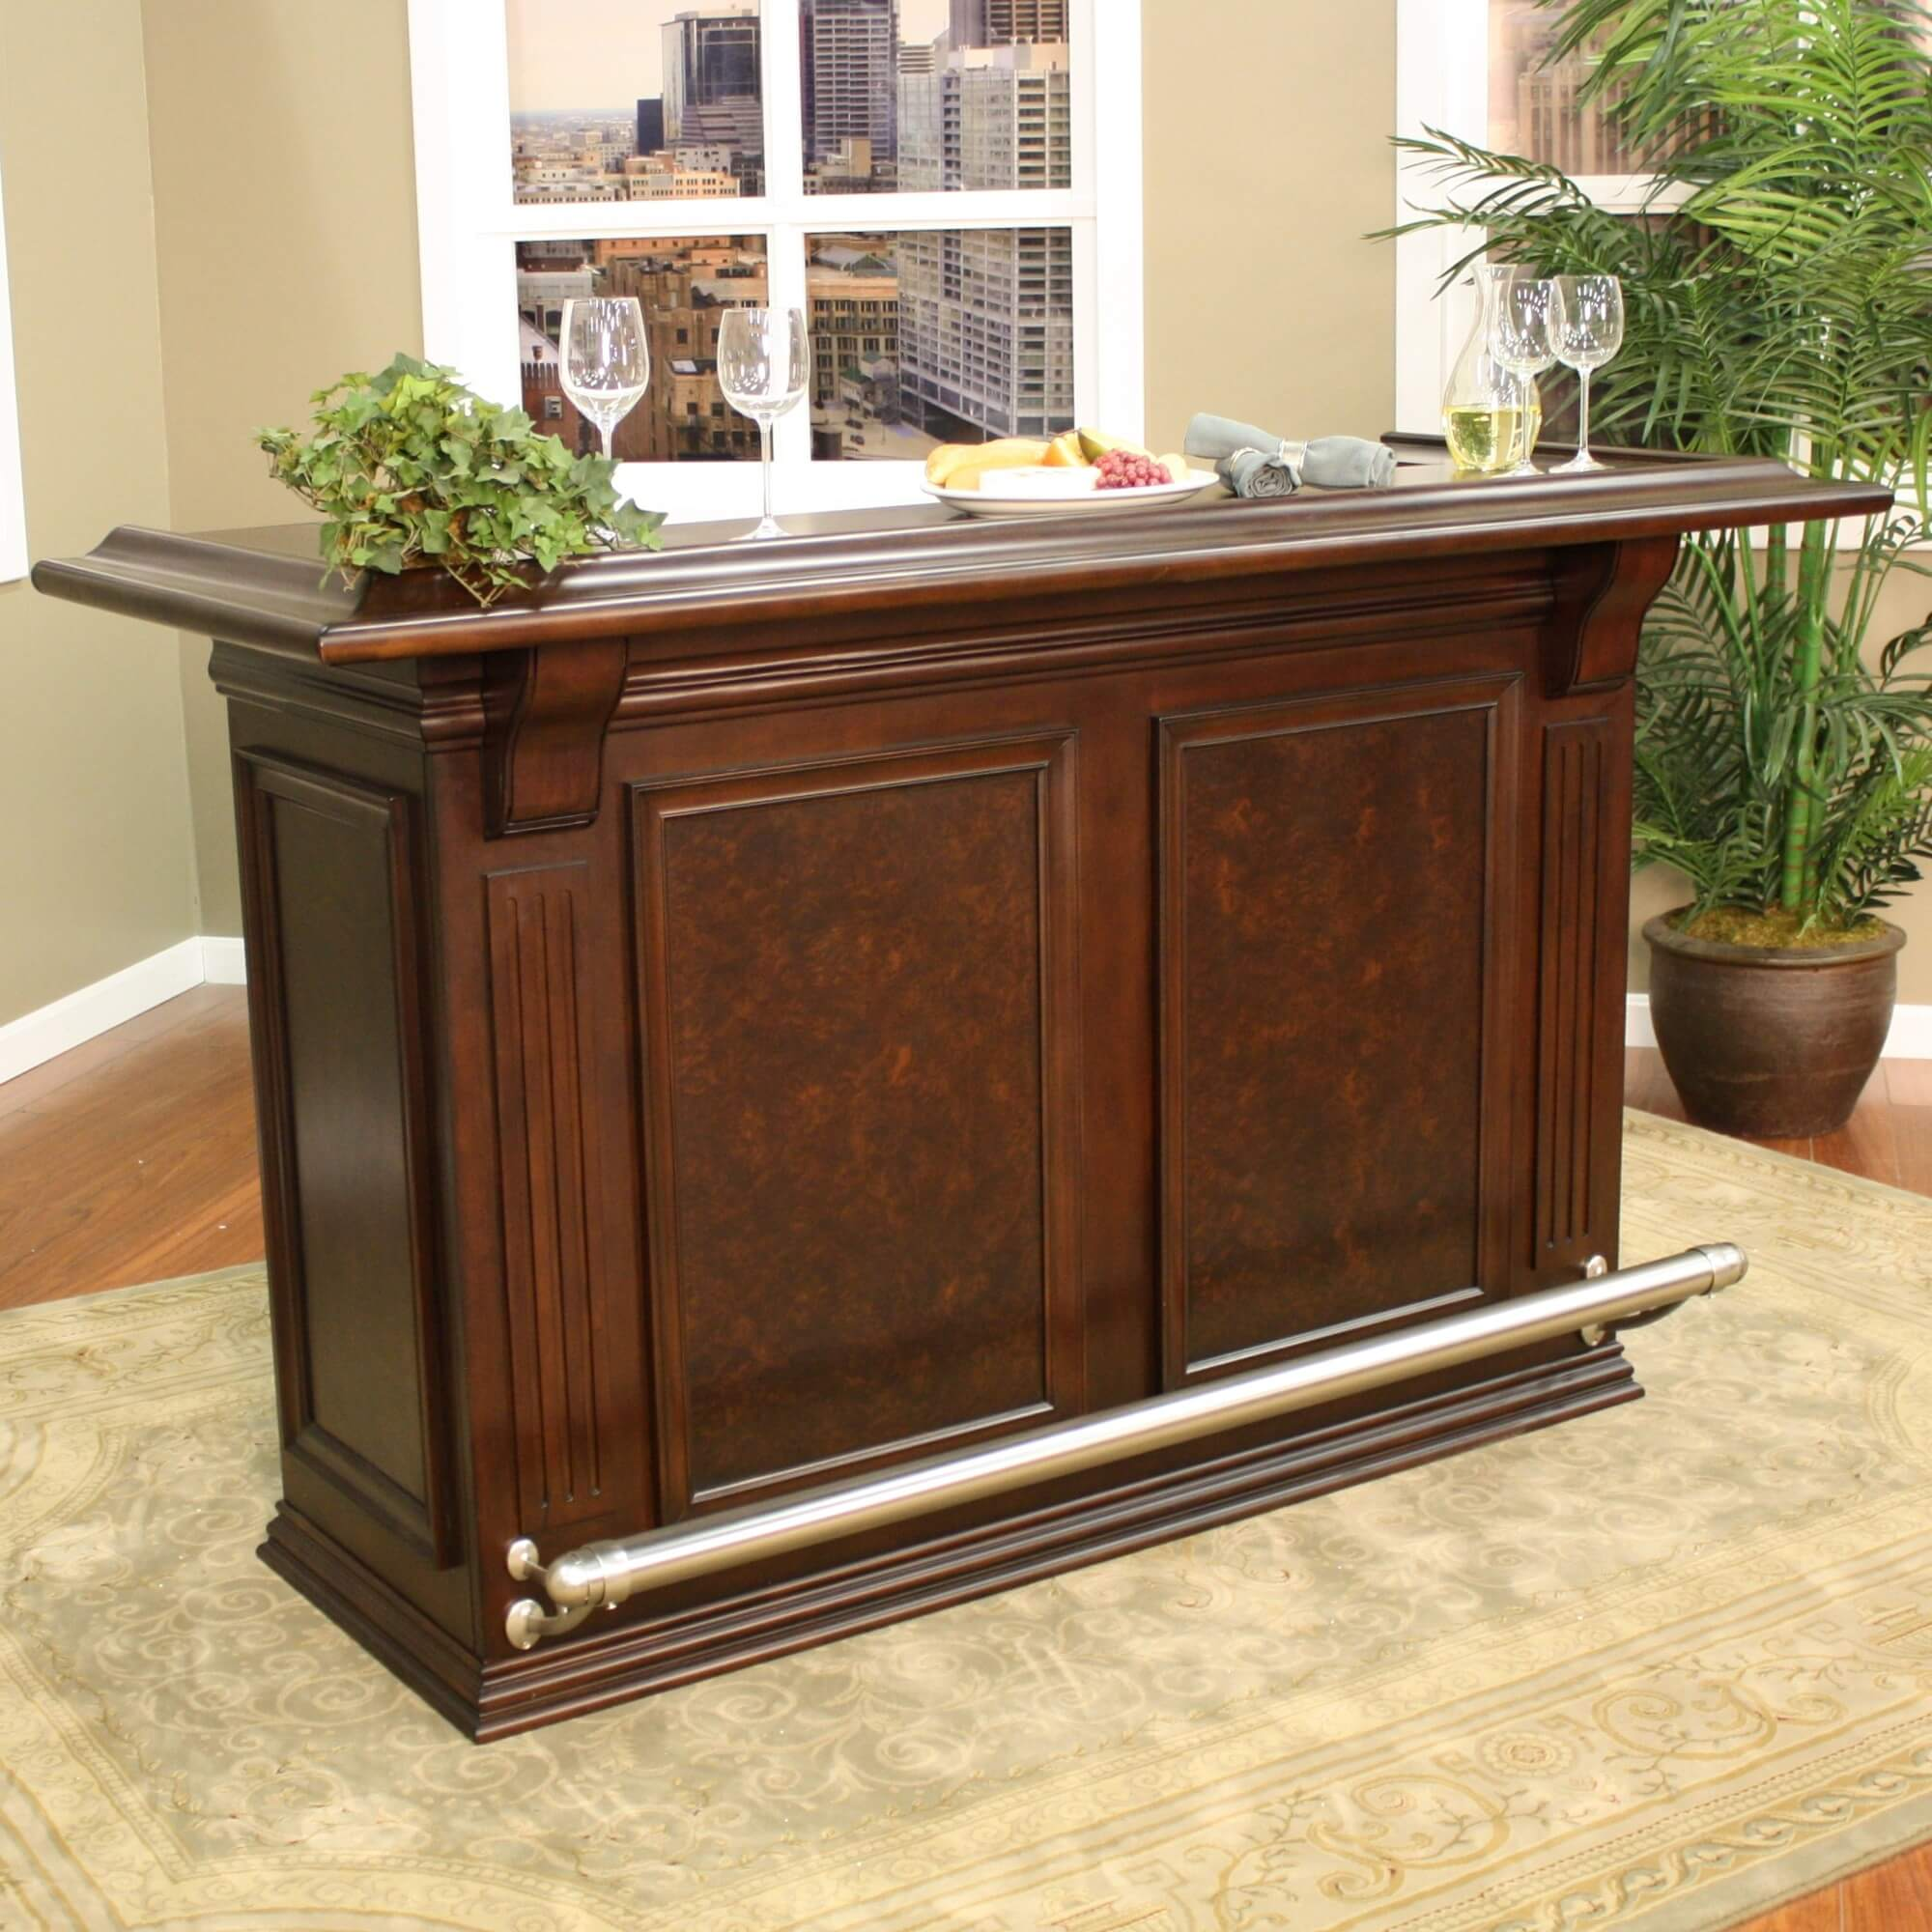 Traditional Style Home Bar For A Smaller Design, This Home Bar Offers Some  Great Features Such As A Foot